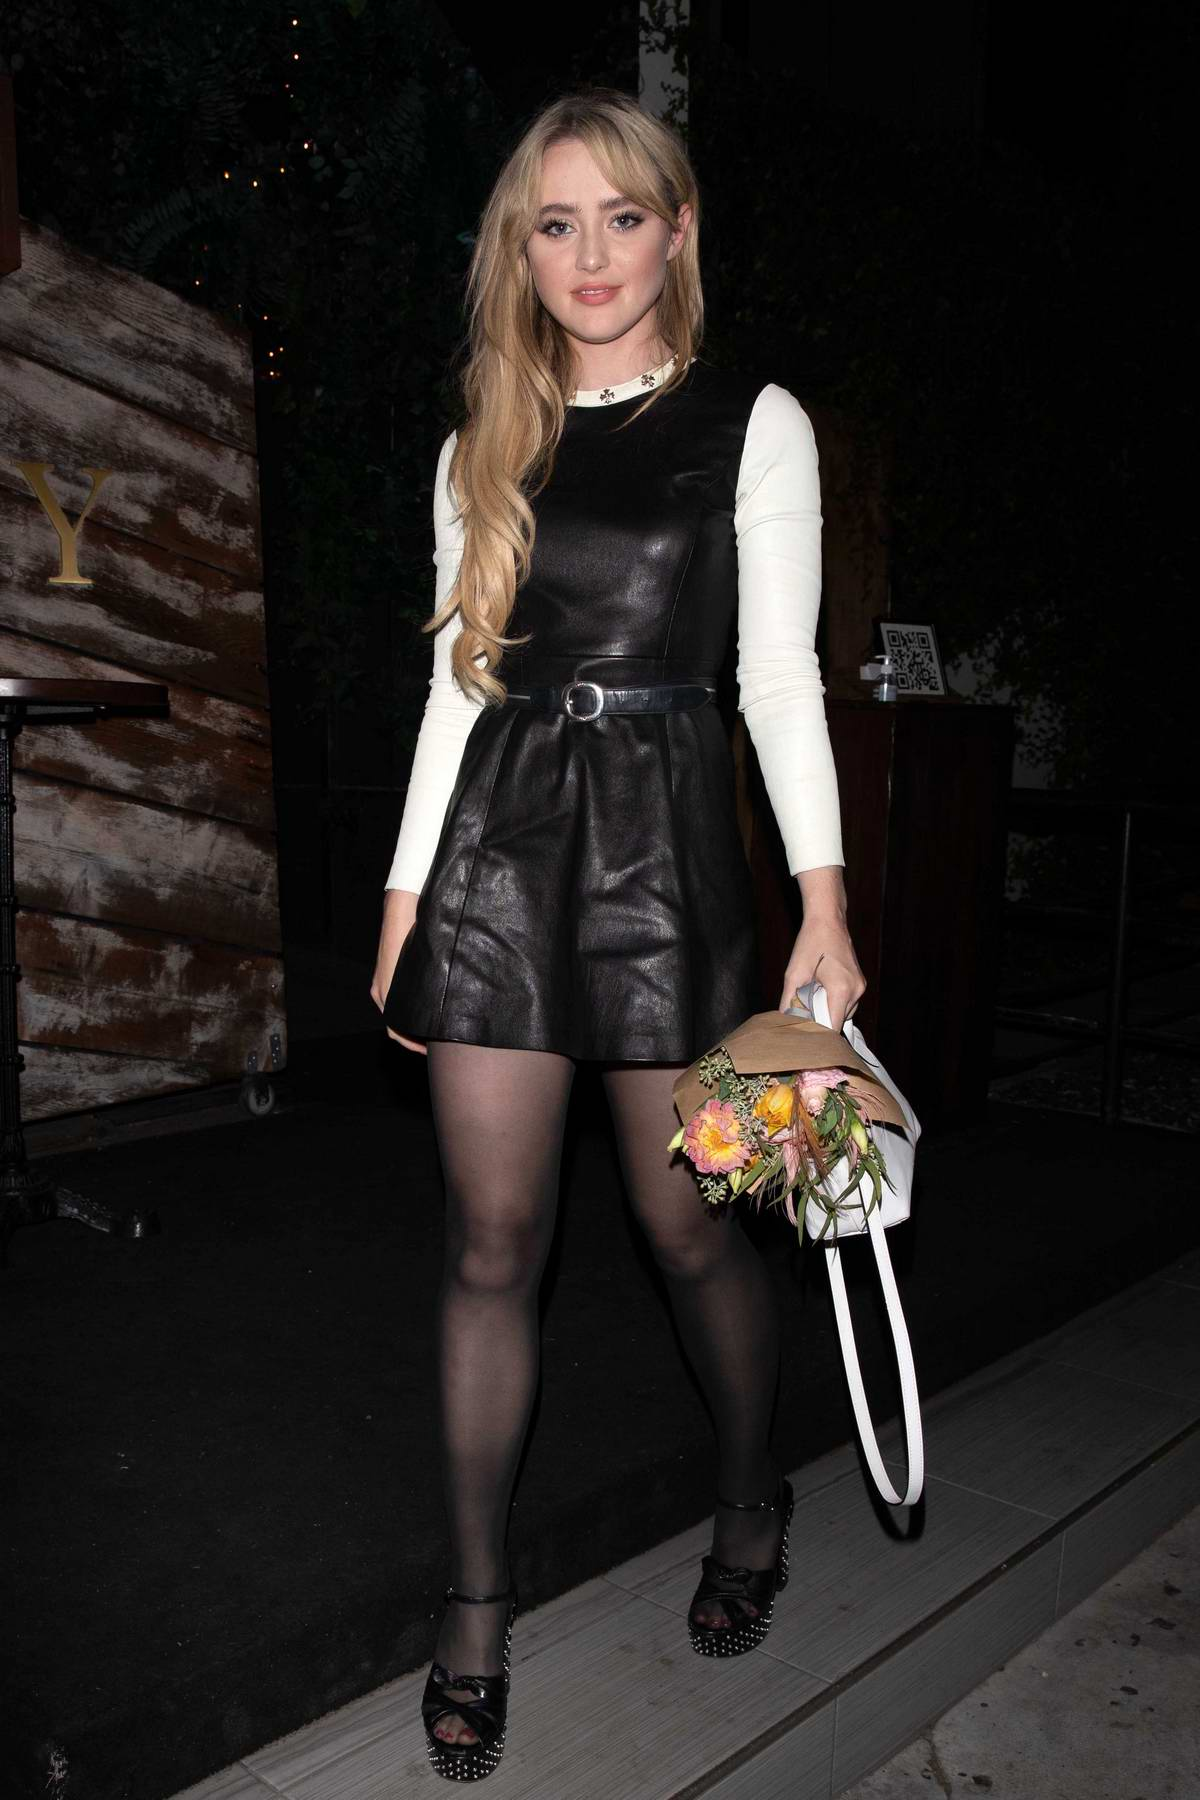 Kathryn Newton looks amazing in a leather minidress during a dinner outing in Los Angeles